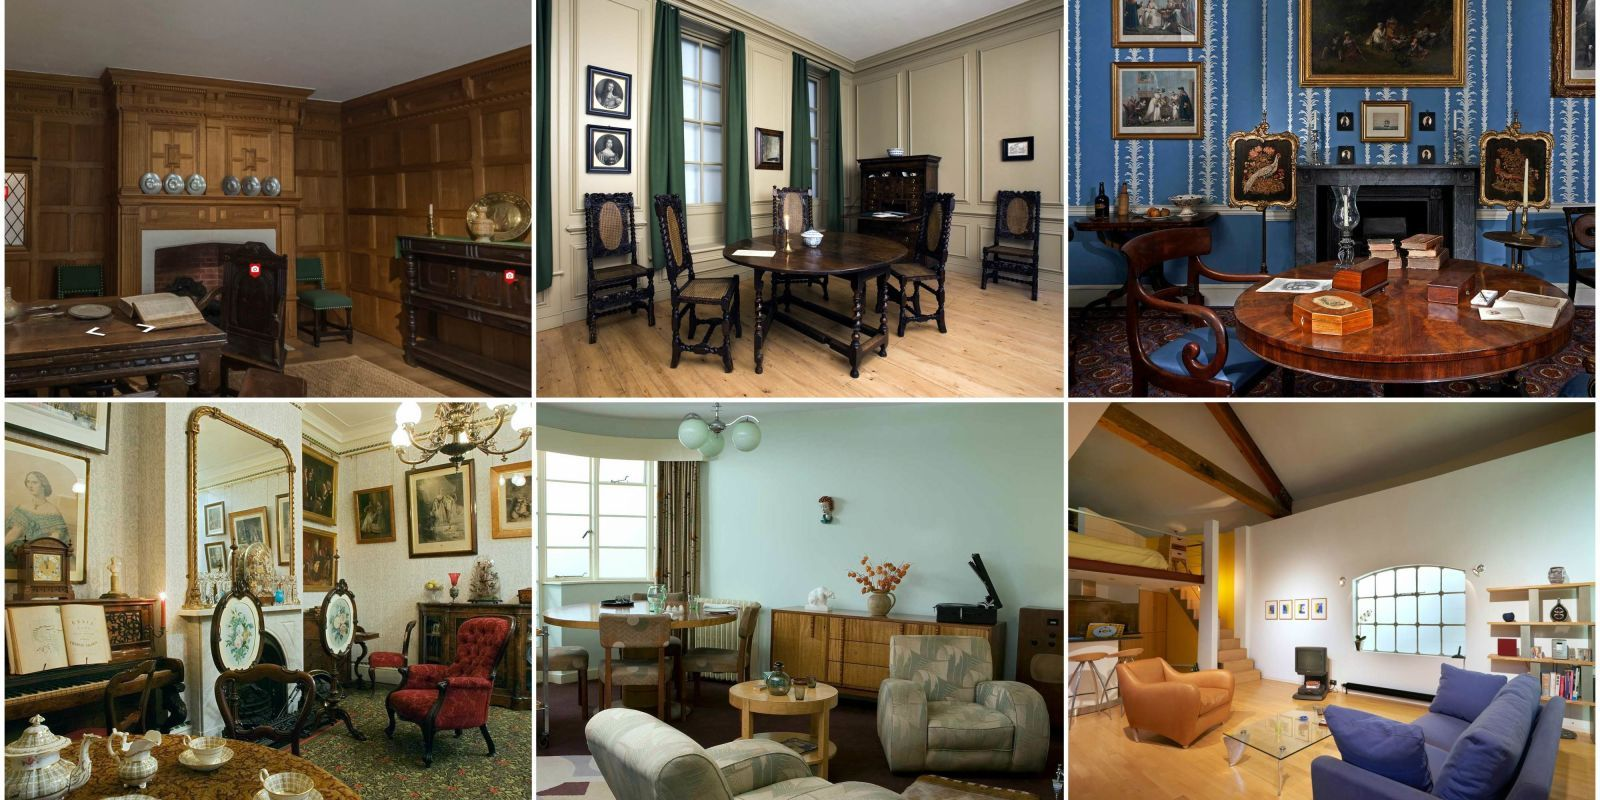 The history of interior design throughout London homes -http://www.housebeautiful.co.uk/decorate/looks/news/a1981/virtual-tour-london-interior-design-ages/  #interiors #homestyle #decor #design #interiordesign